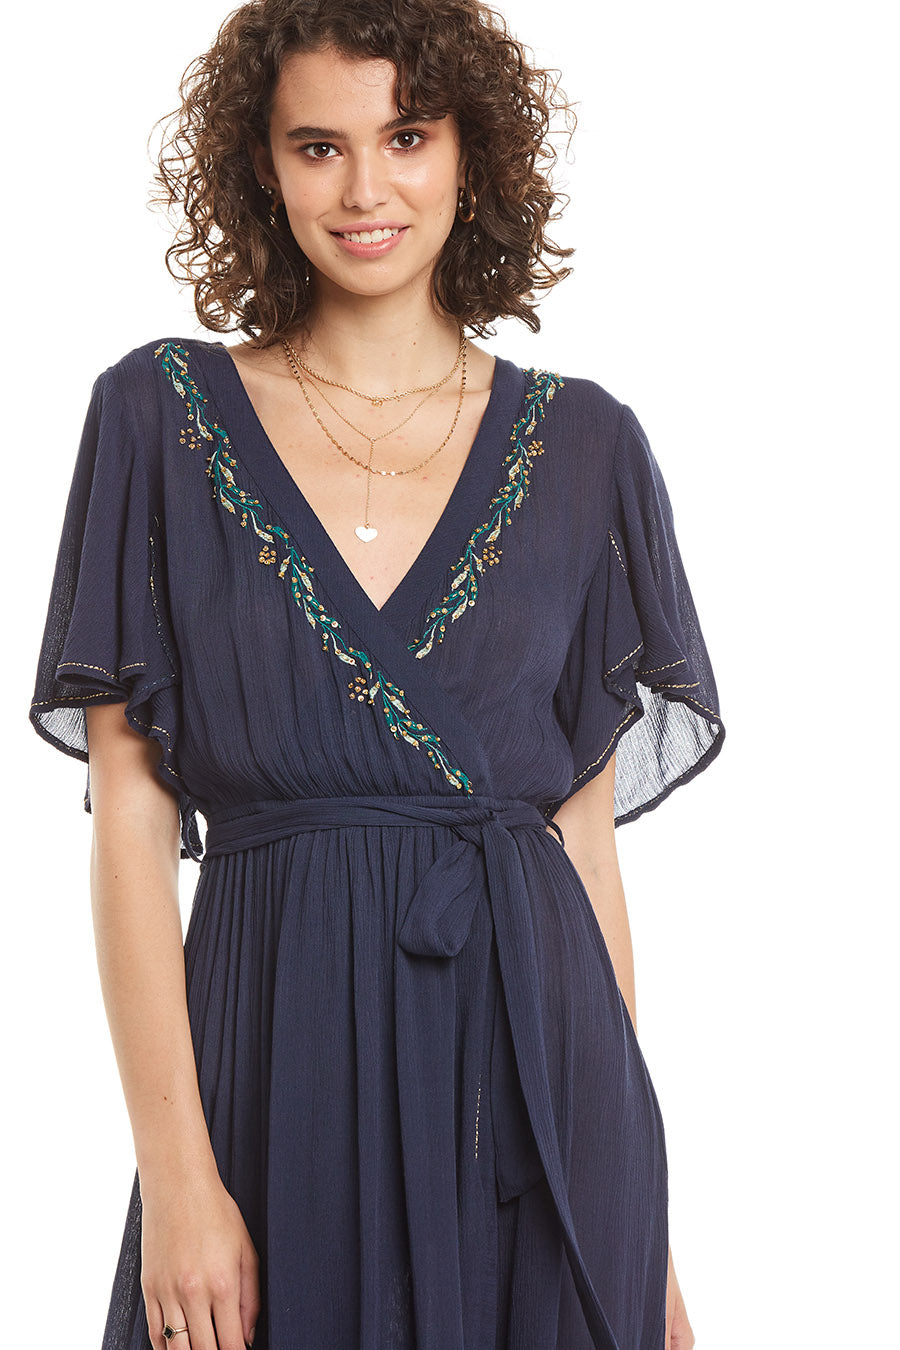 Dark Navy wrap dress with embroidery detail and colorful beading around the neckline